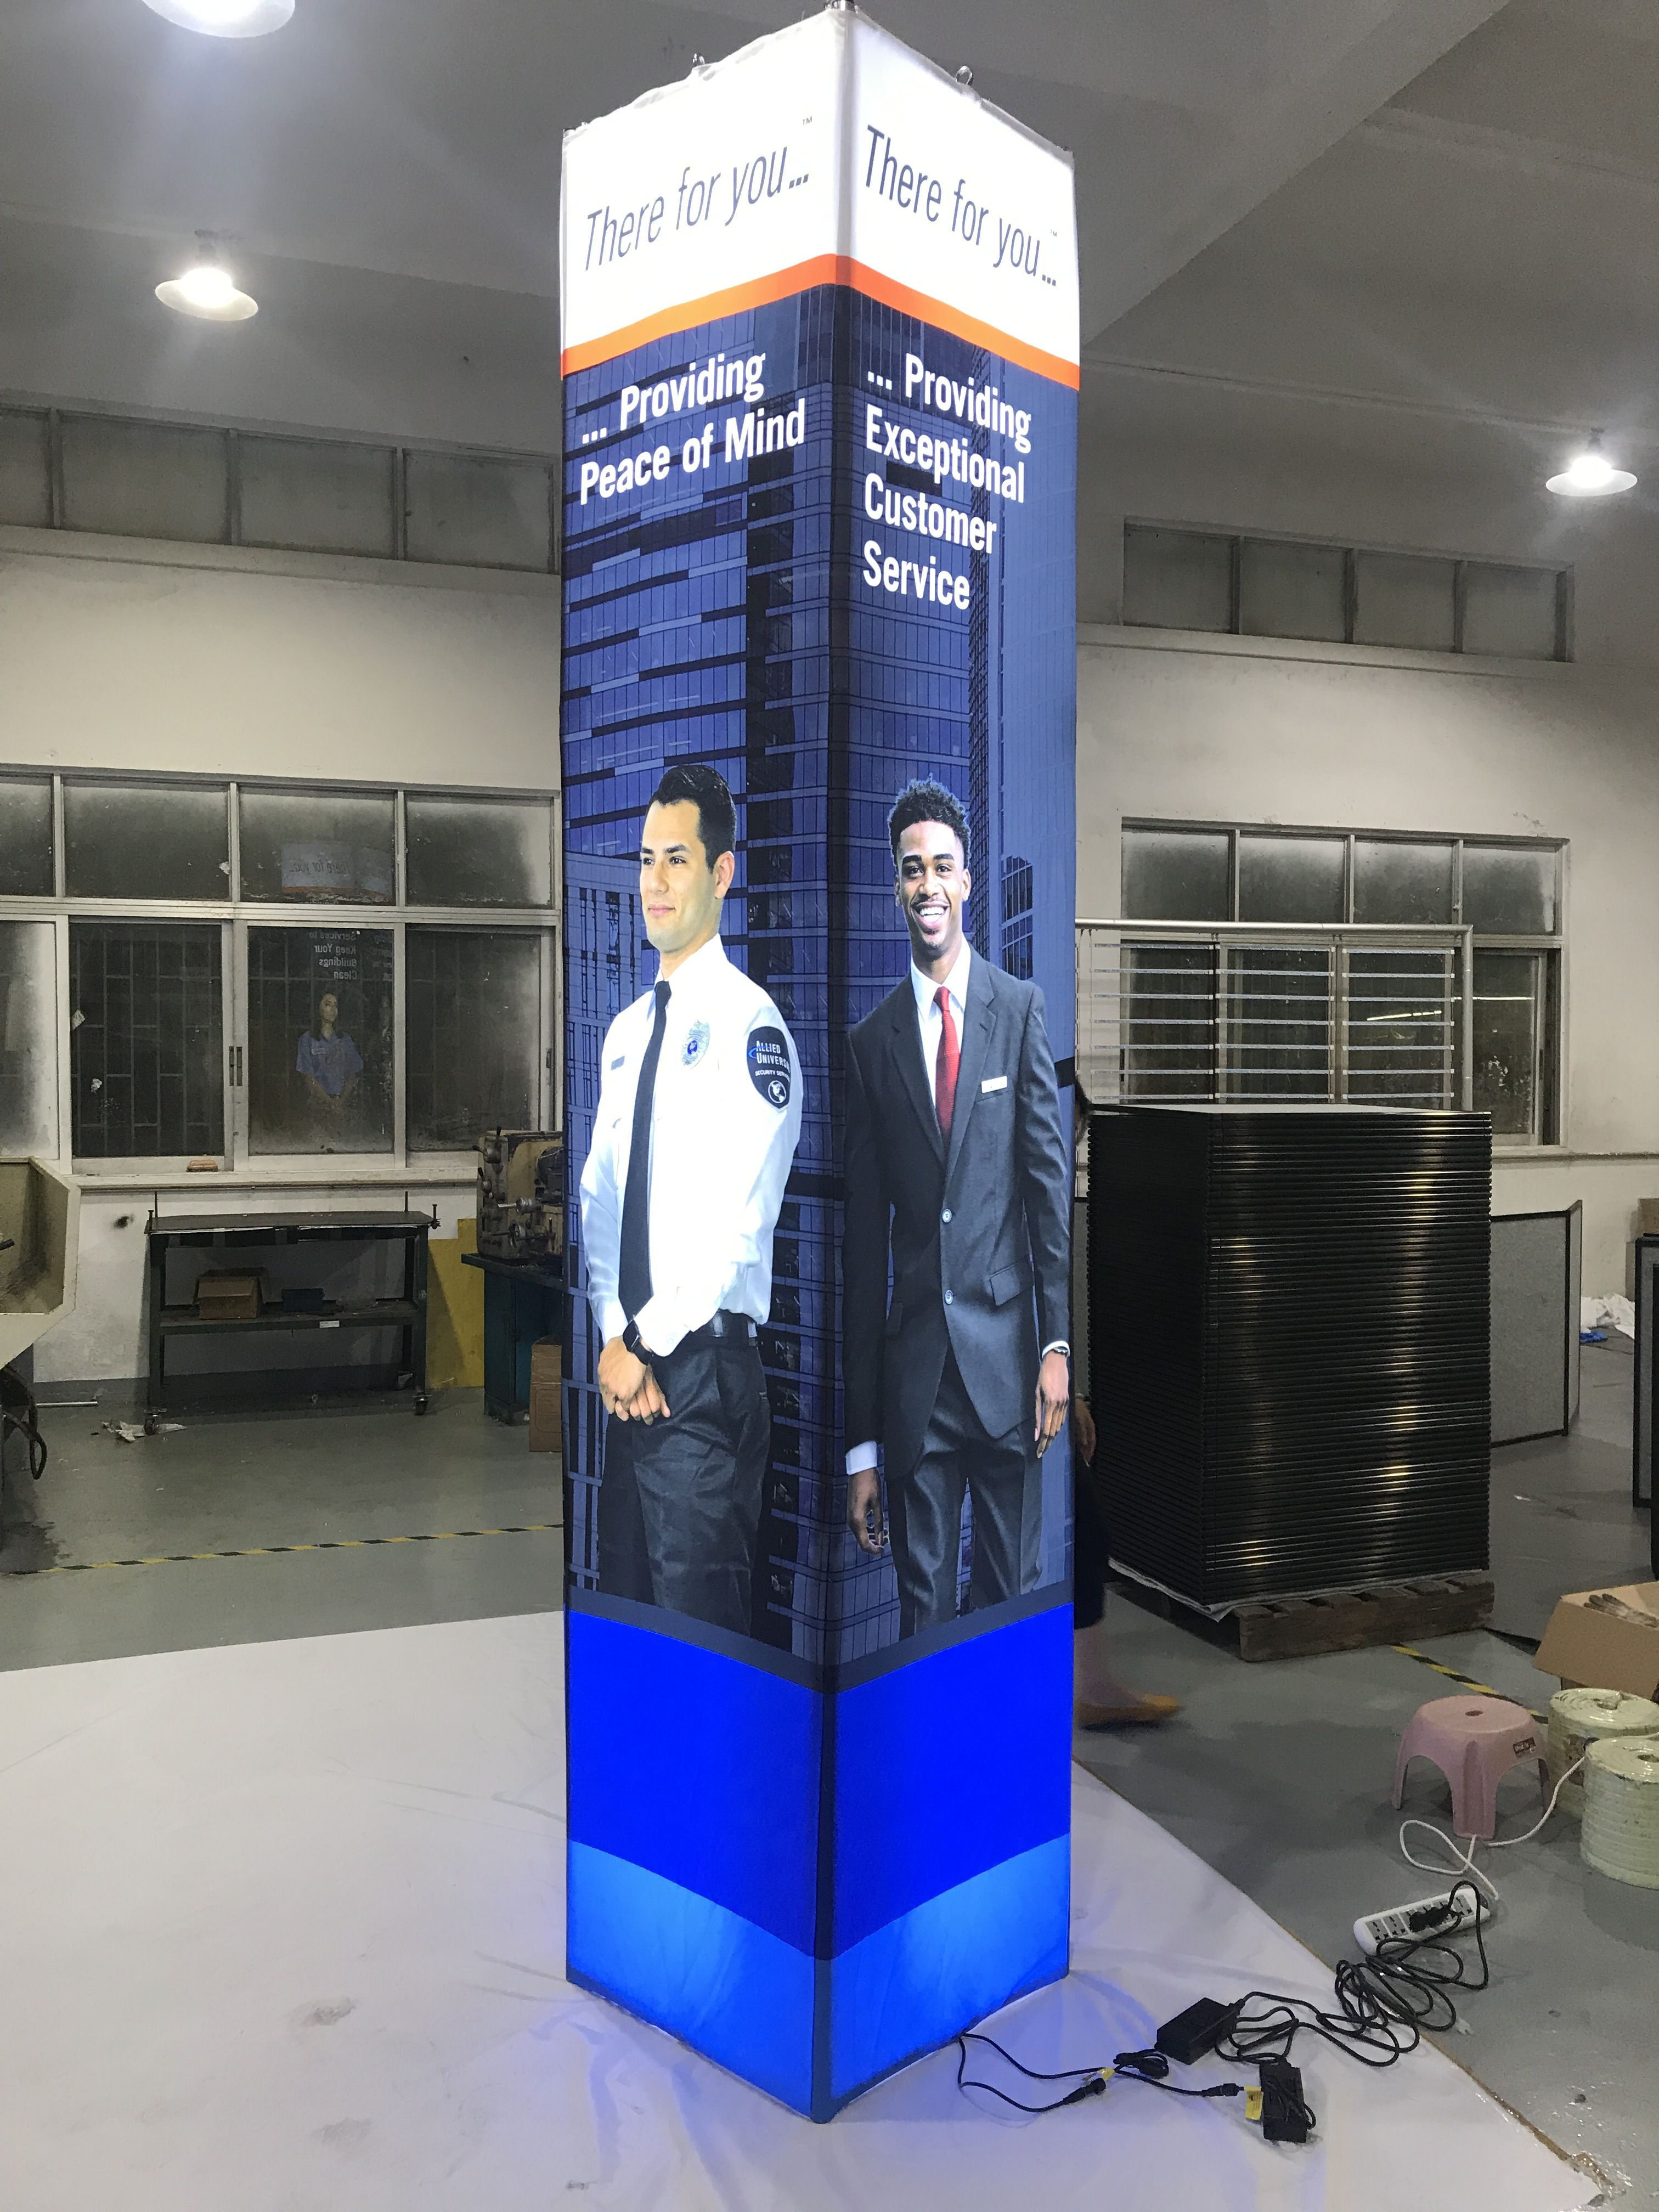 trade show towers led pillars oh my print solutions trade show led pillars led light box